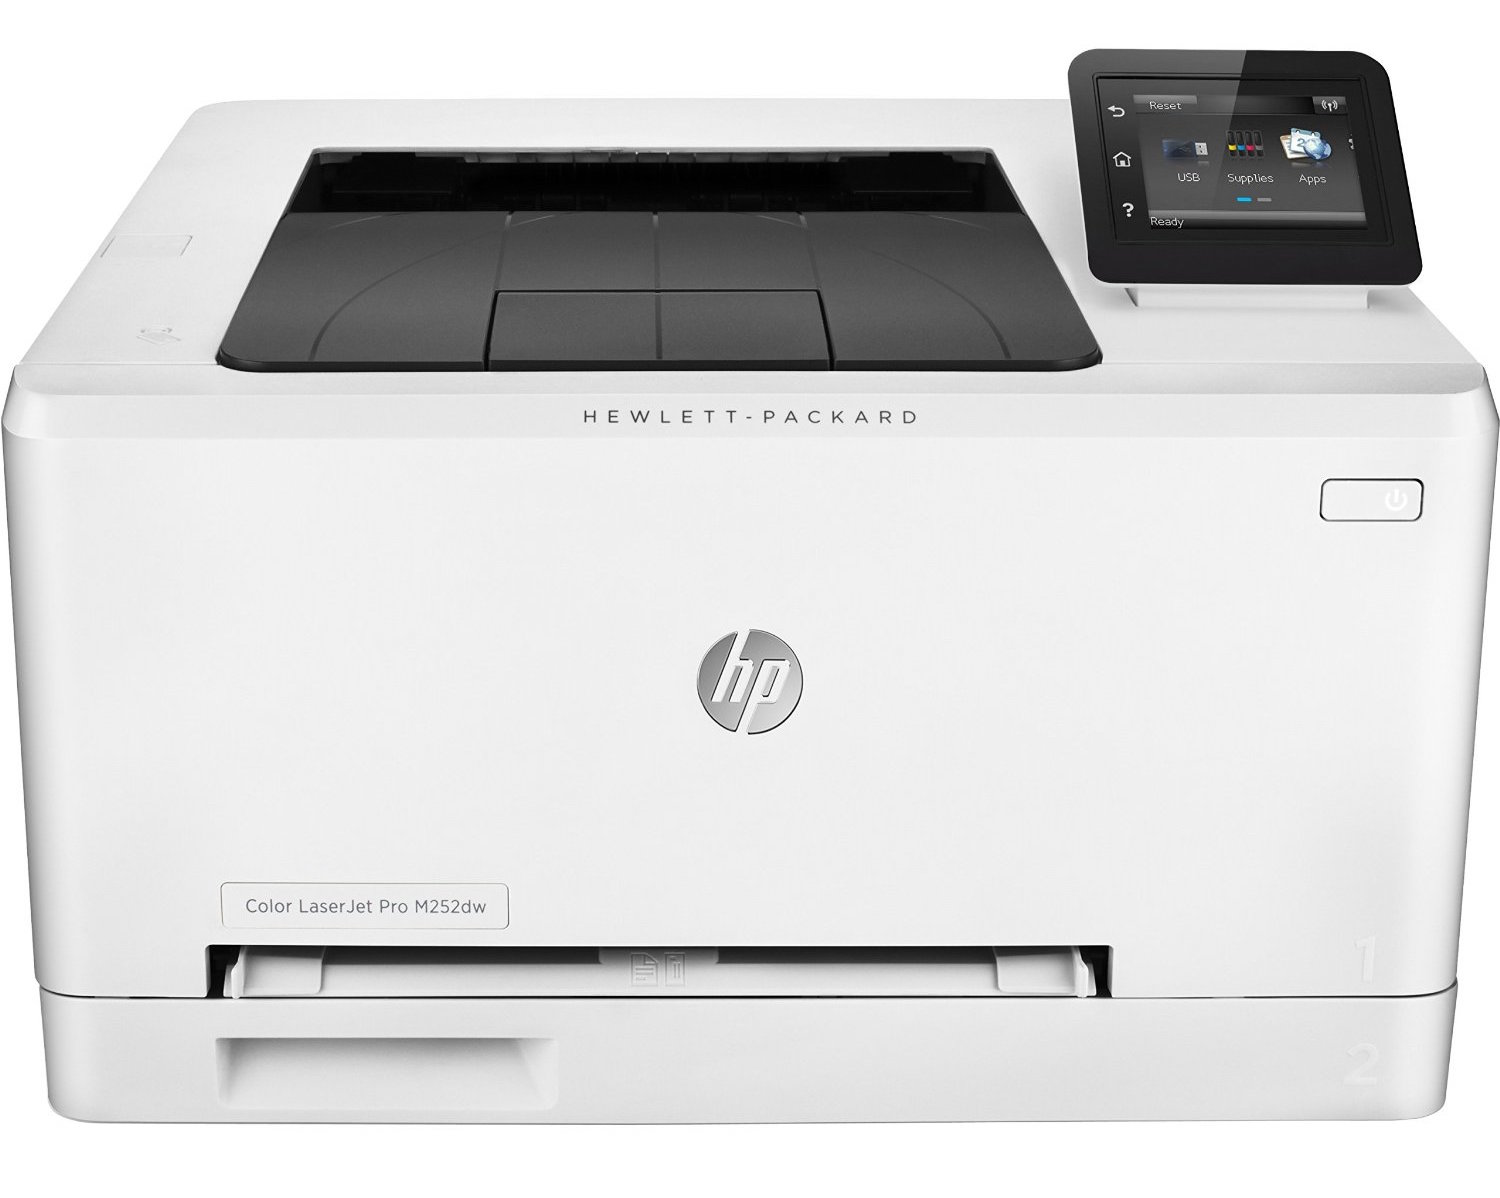 HP LaserJet Wireless Color Printer for home